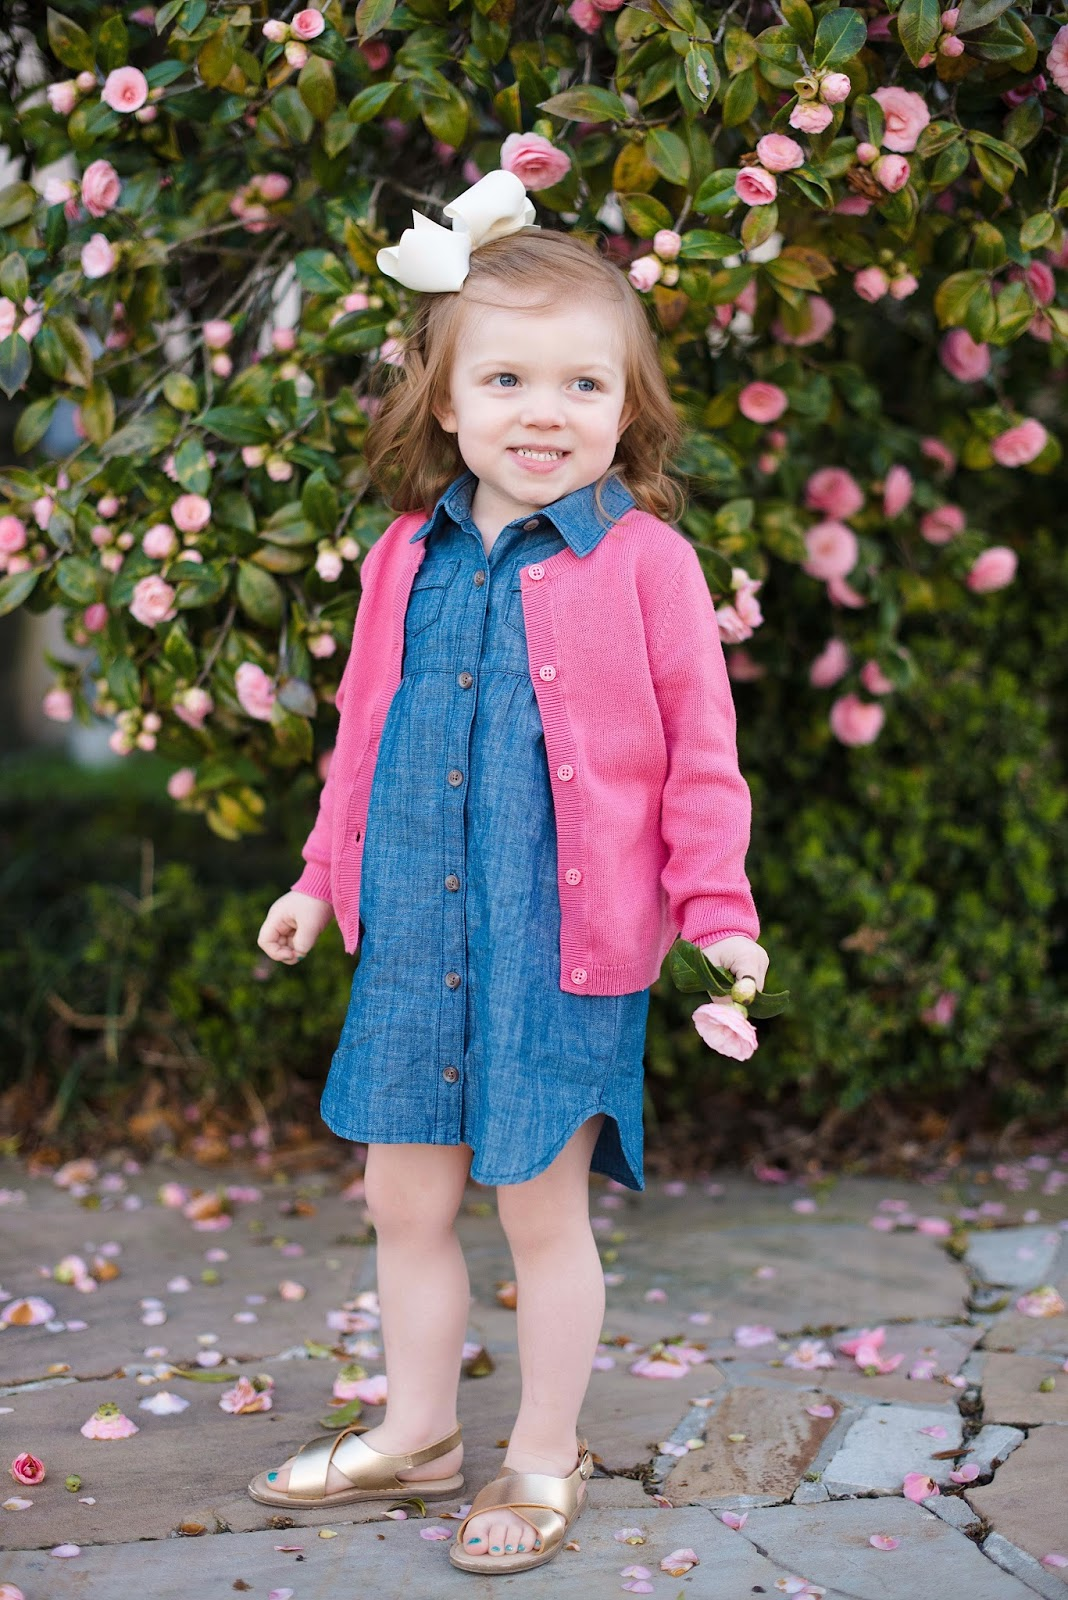 Toddler Fashion: Chambray Dress with Pink Cardigan - Click through to see the full post + outfit details on Something Delightful Blog